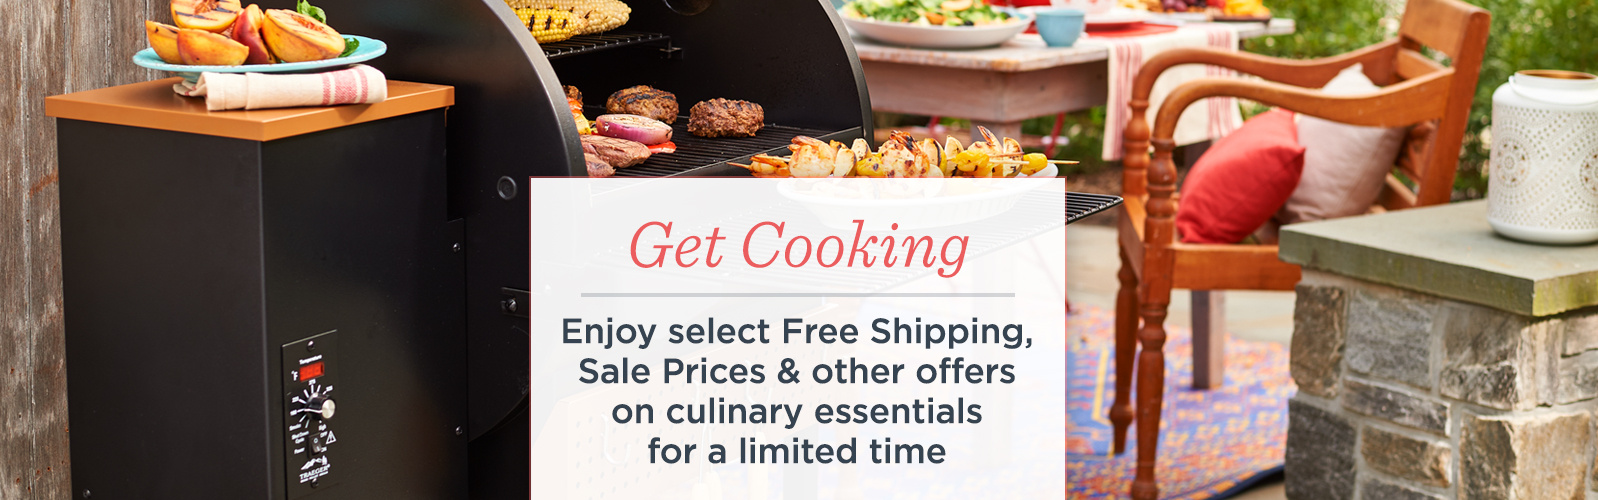 Get Cooking. Enjoy select Free Shipping, Sale Prices & other offers on culinary essentials for a limited time